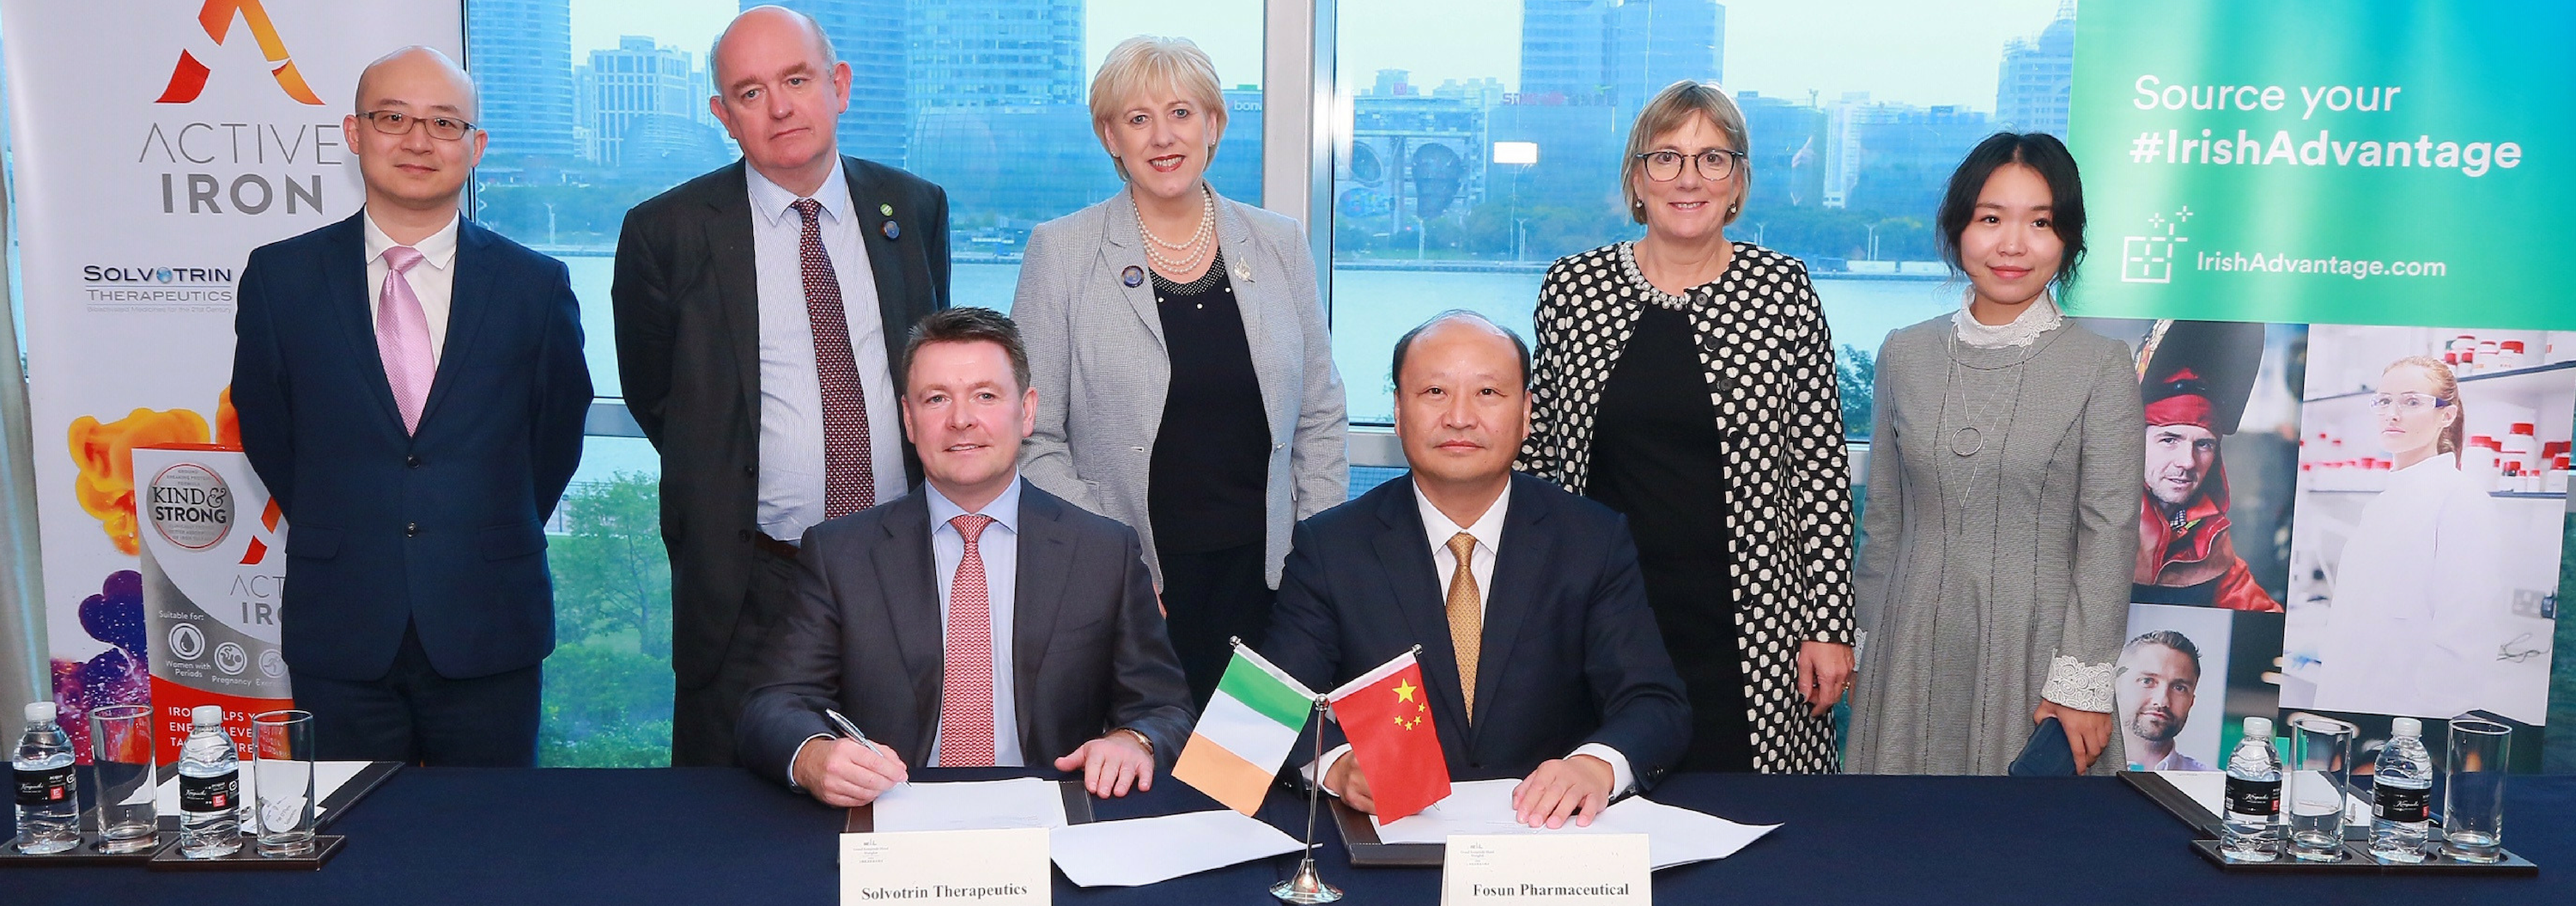 Solvotrin Therapeutics sets sights on China